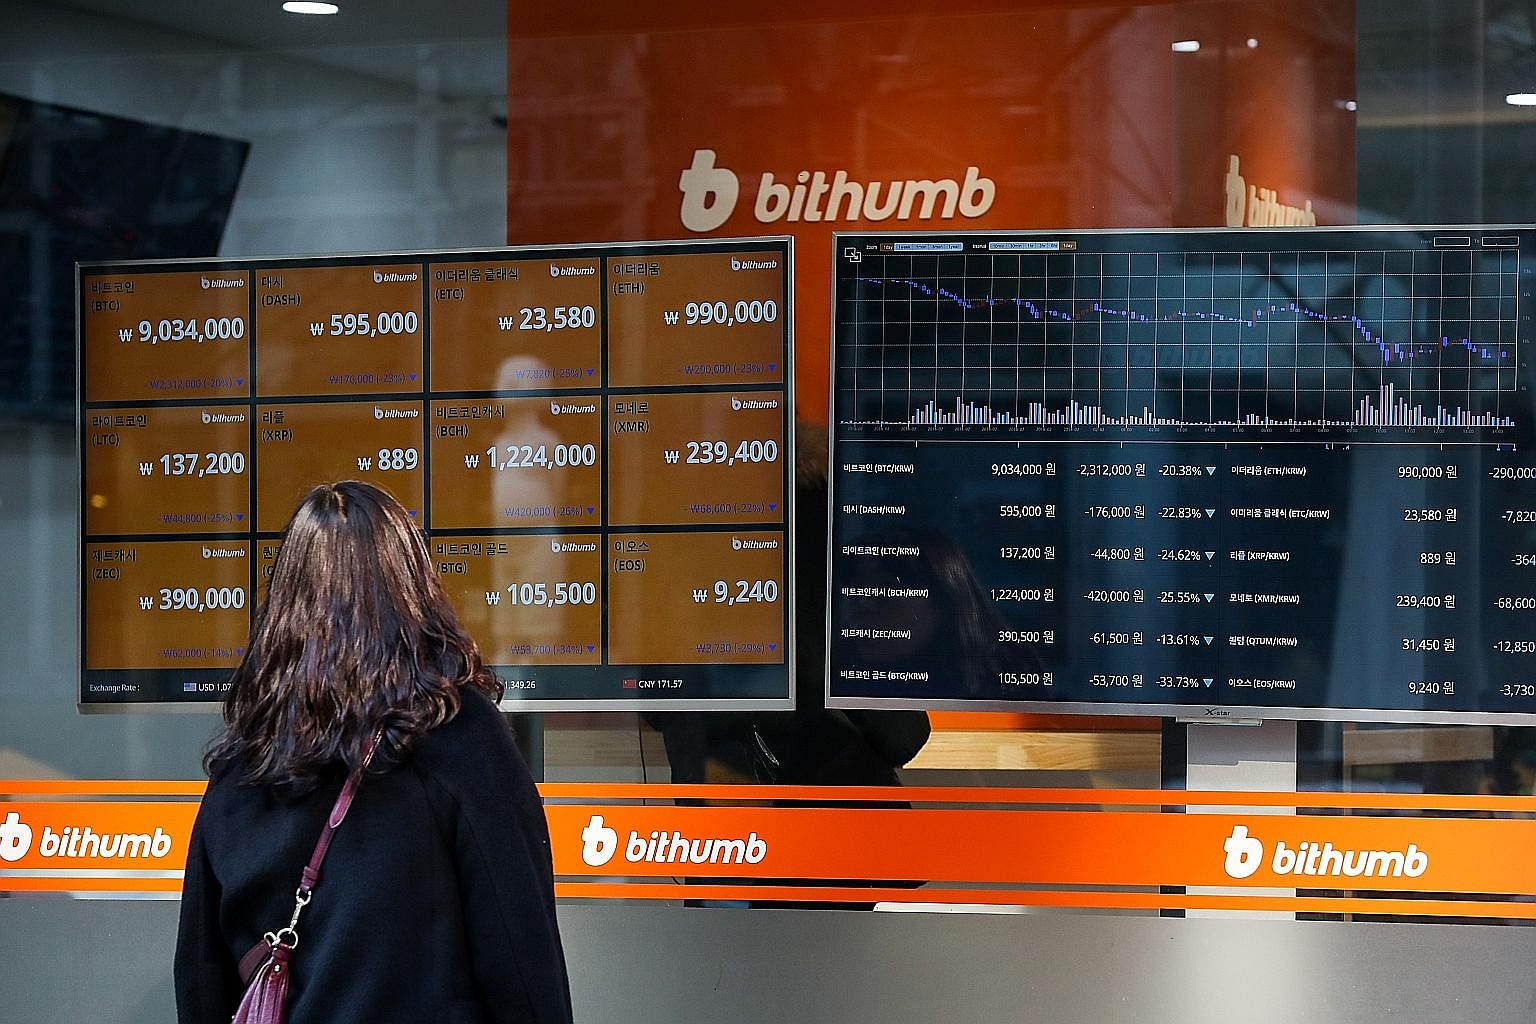 Monitors show prices of virtual currencies at the Bithumb exchange office in Seoul. Cryptocurrencies will not be actual currencies, except for drug dealers and others who cannot use normal forms of payment, says the writer.